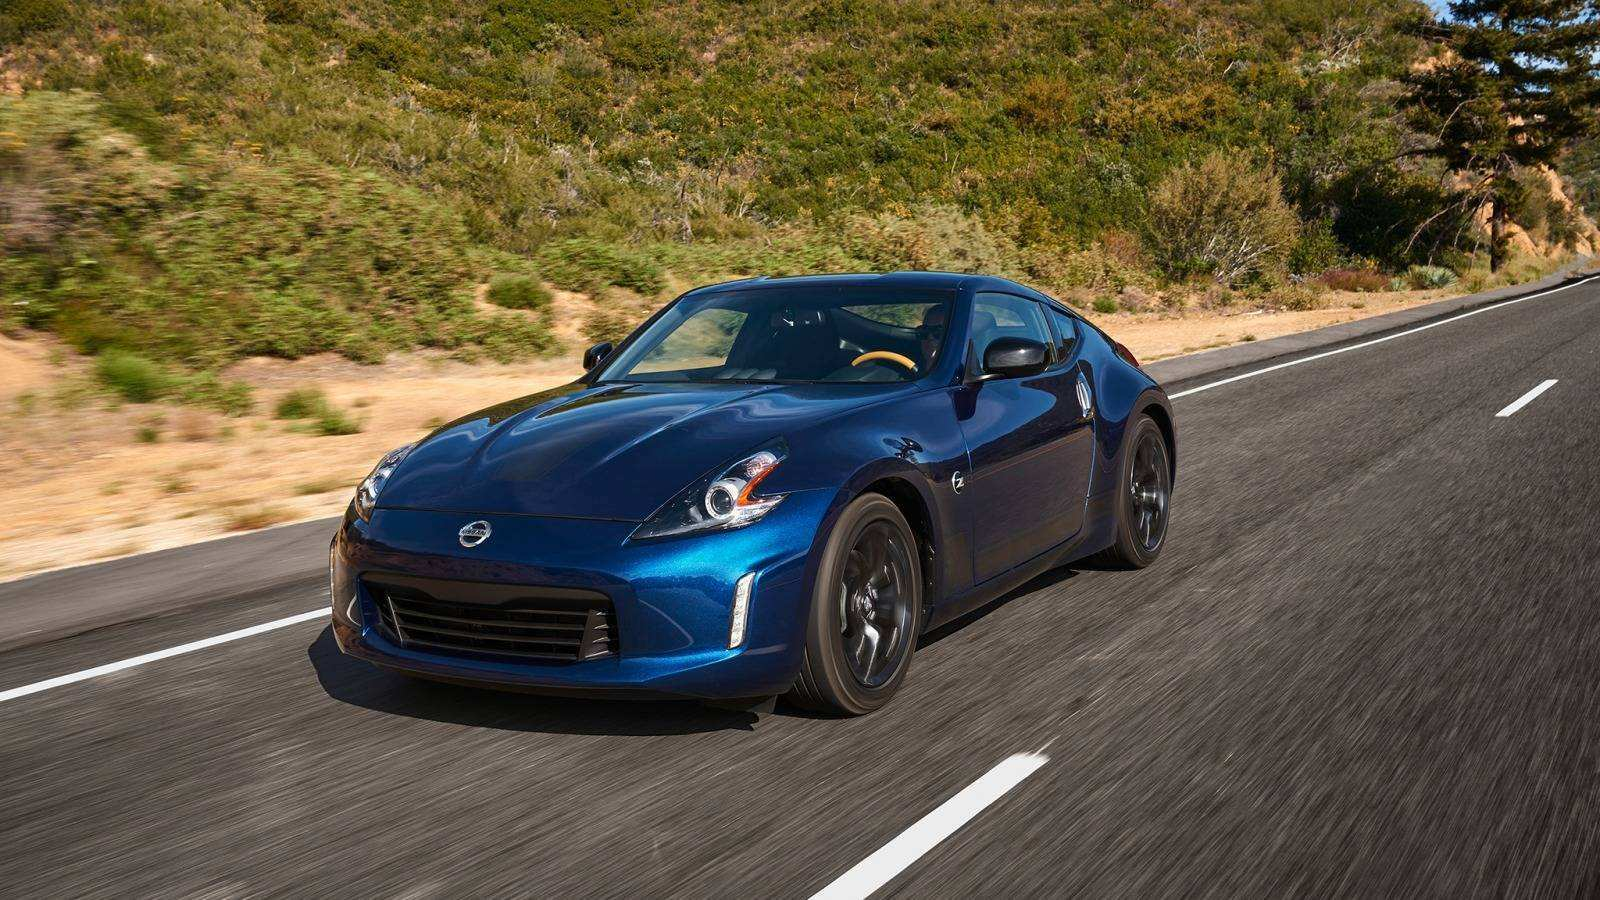 43 Gallery of 2019 Nissan Z Redesign Price And Review Model for 2019 Nissan Z Redesign Price And Review